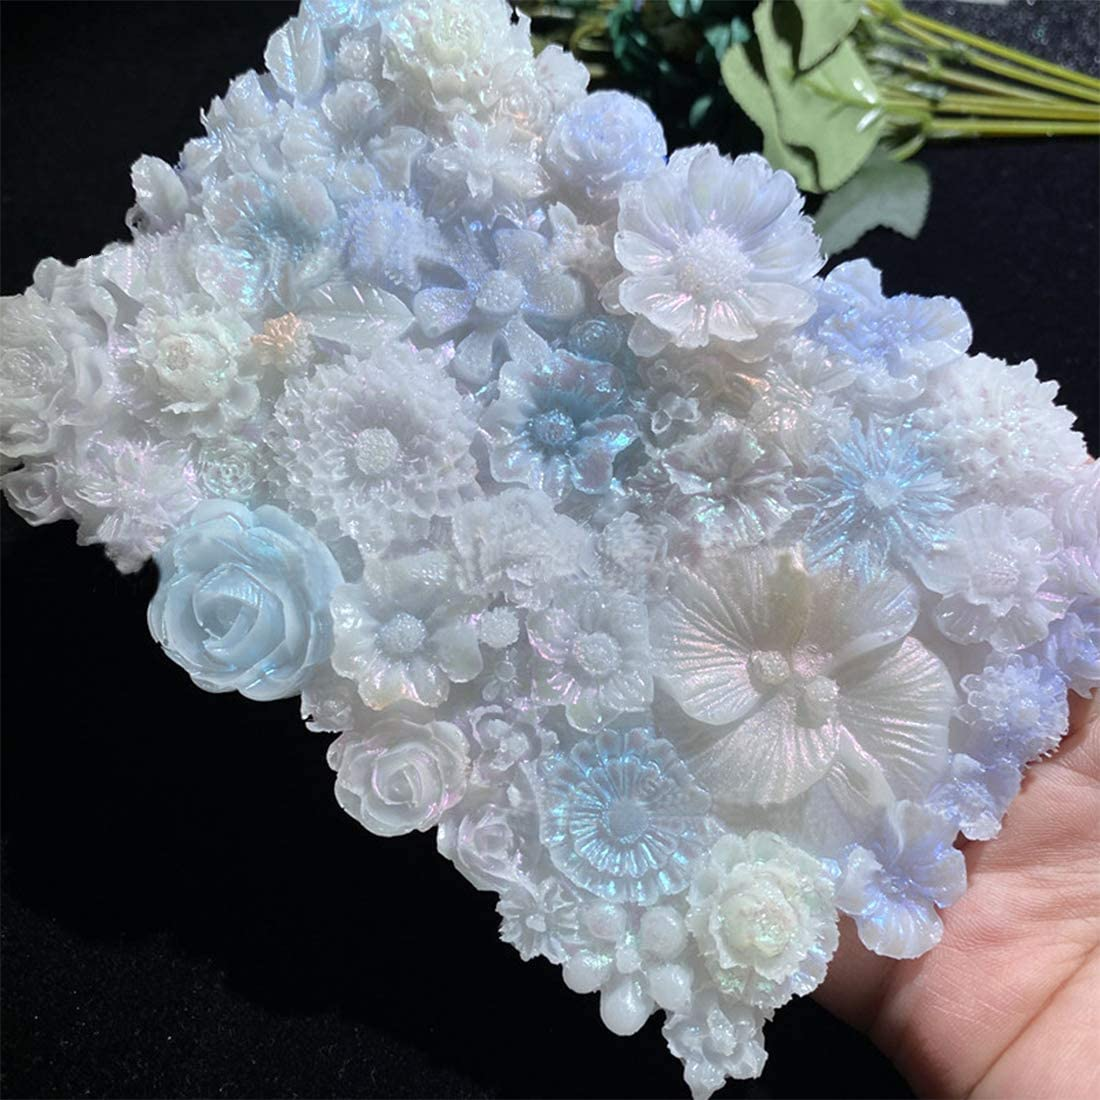 Platter Molds FineInno Silicone Resin Tray Molds Flower Platter Molds Large Resin Coaster Molds DIY Faux Agate Tray for Making Bottom Bracket Desk//Table//Room Decor